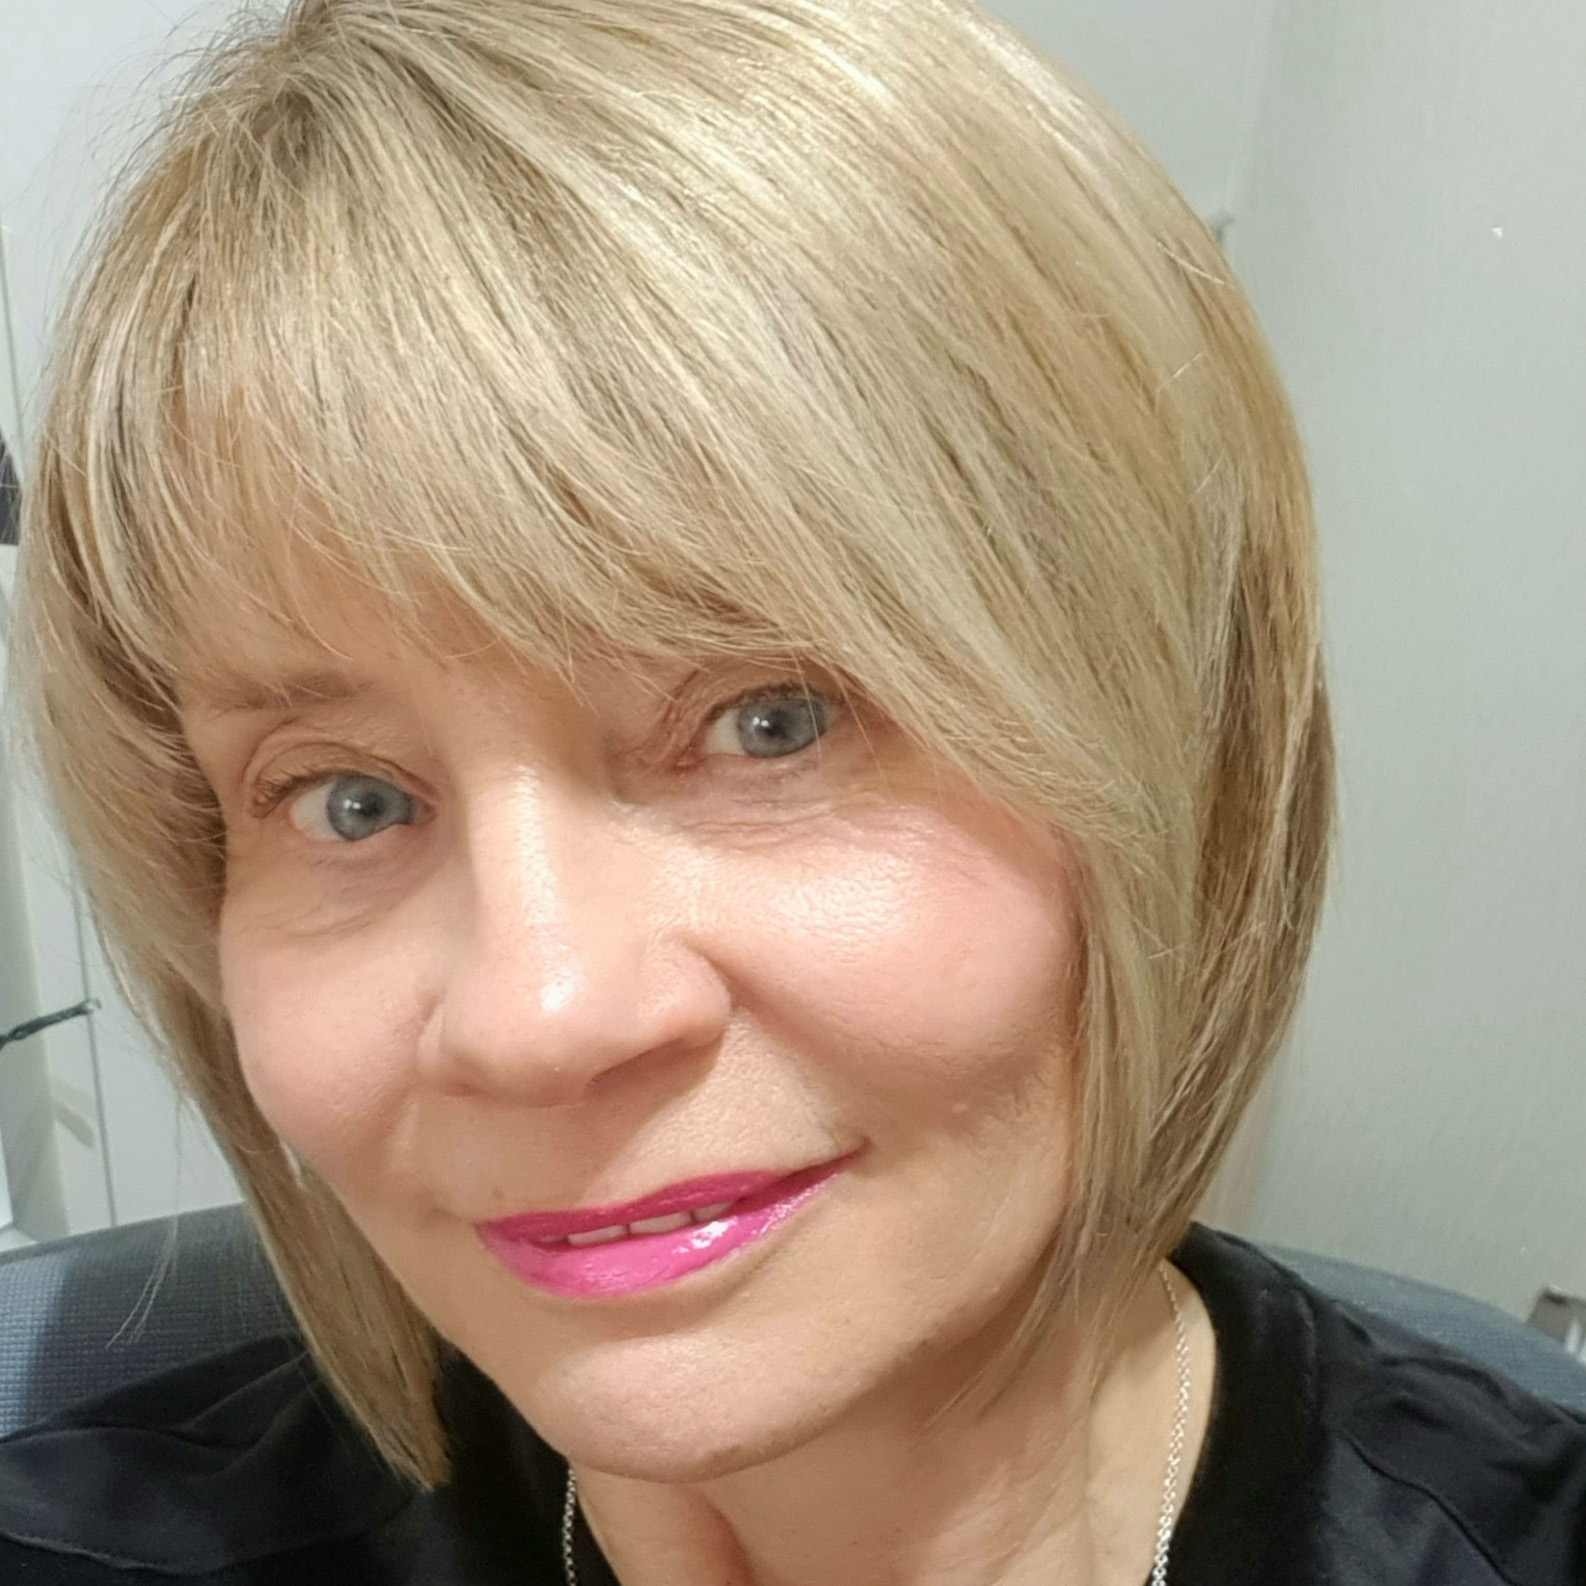 Ageing gracefully over 50 - blonde hair and bright pink lipstick